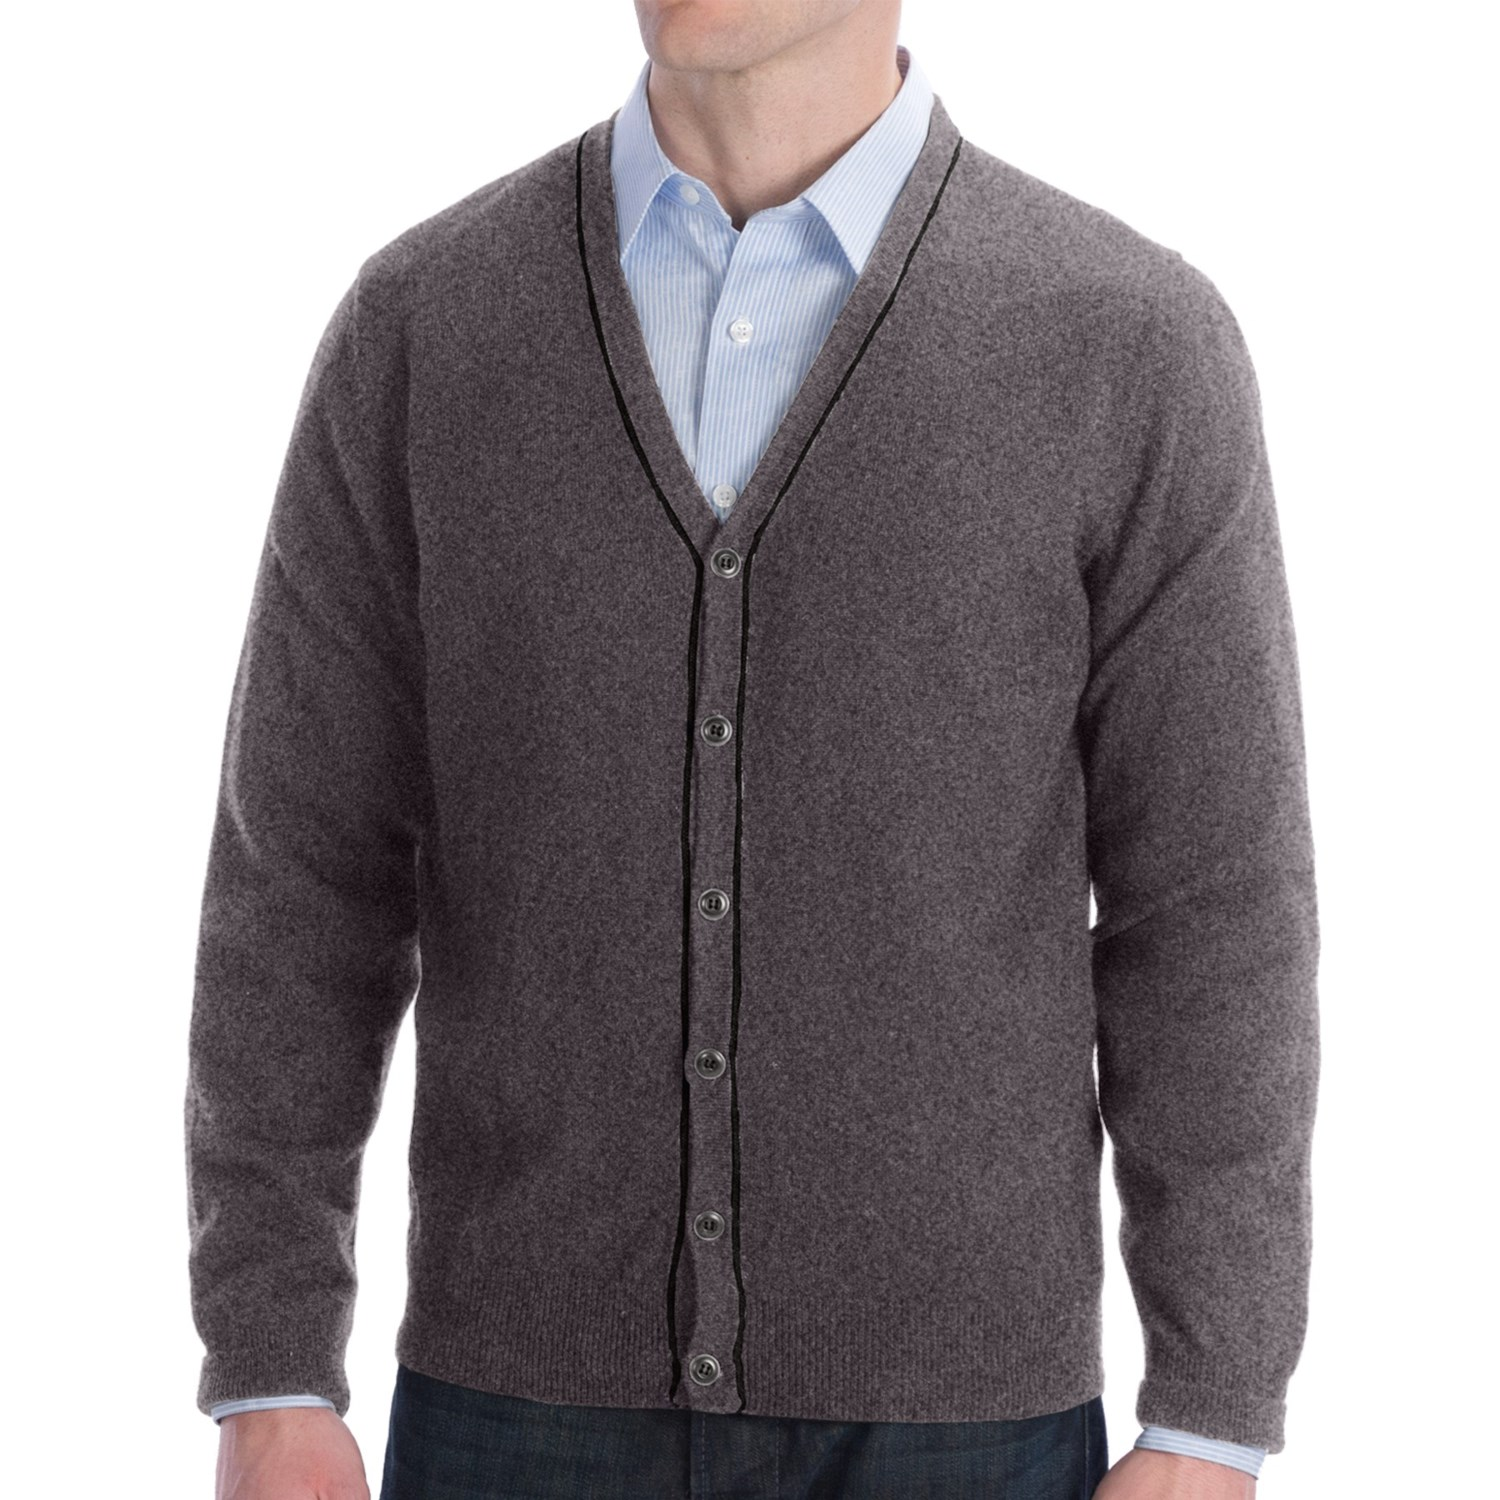 Find a Great Selection of Men's Sweaters